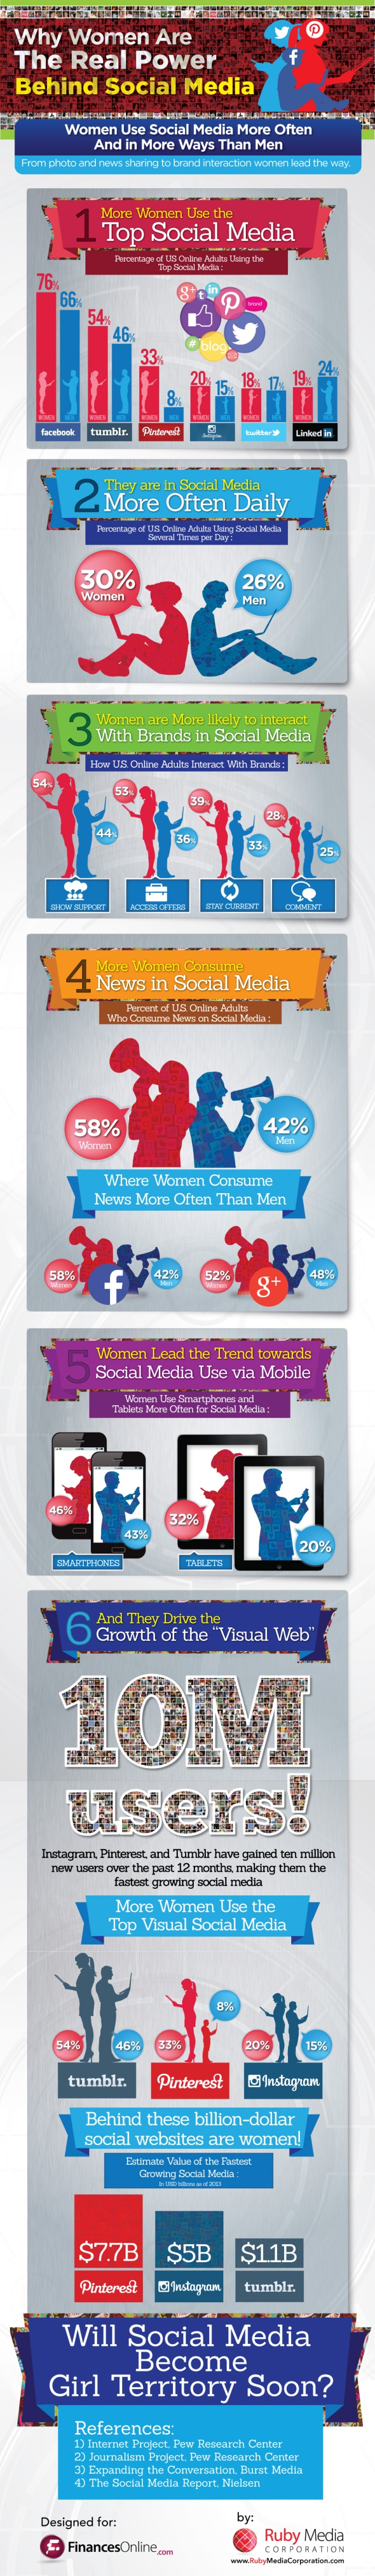 Men or Women: Who Dominates the Social Media Environment?